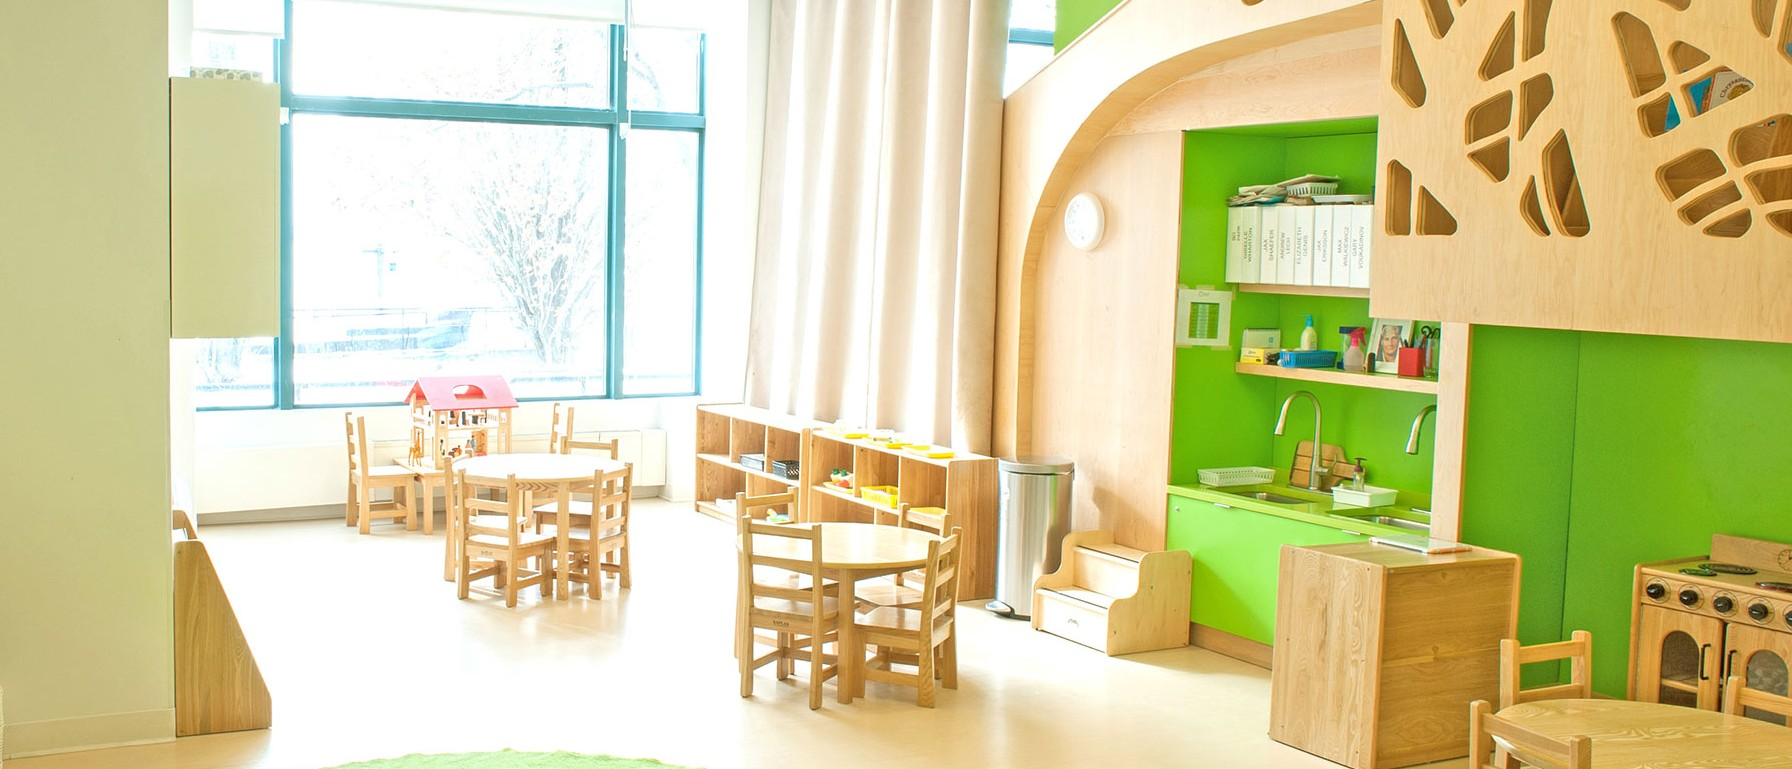 nyc montessori school